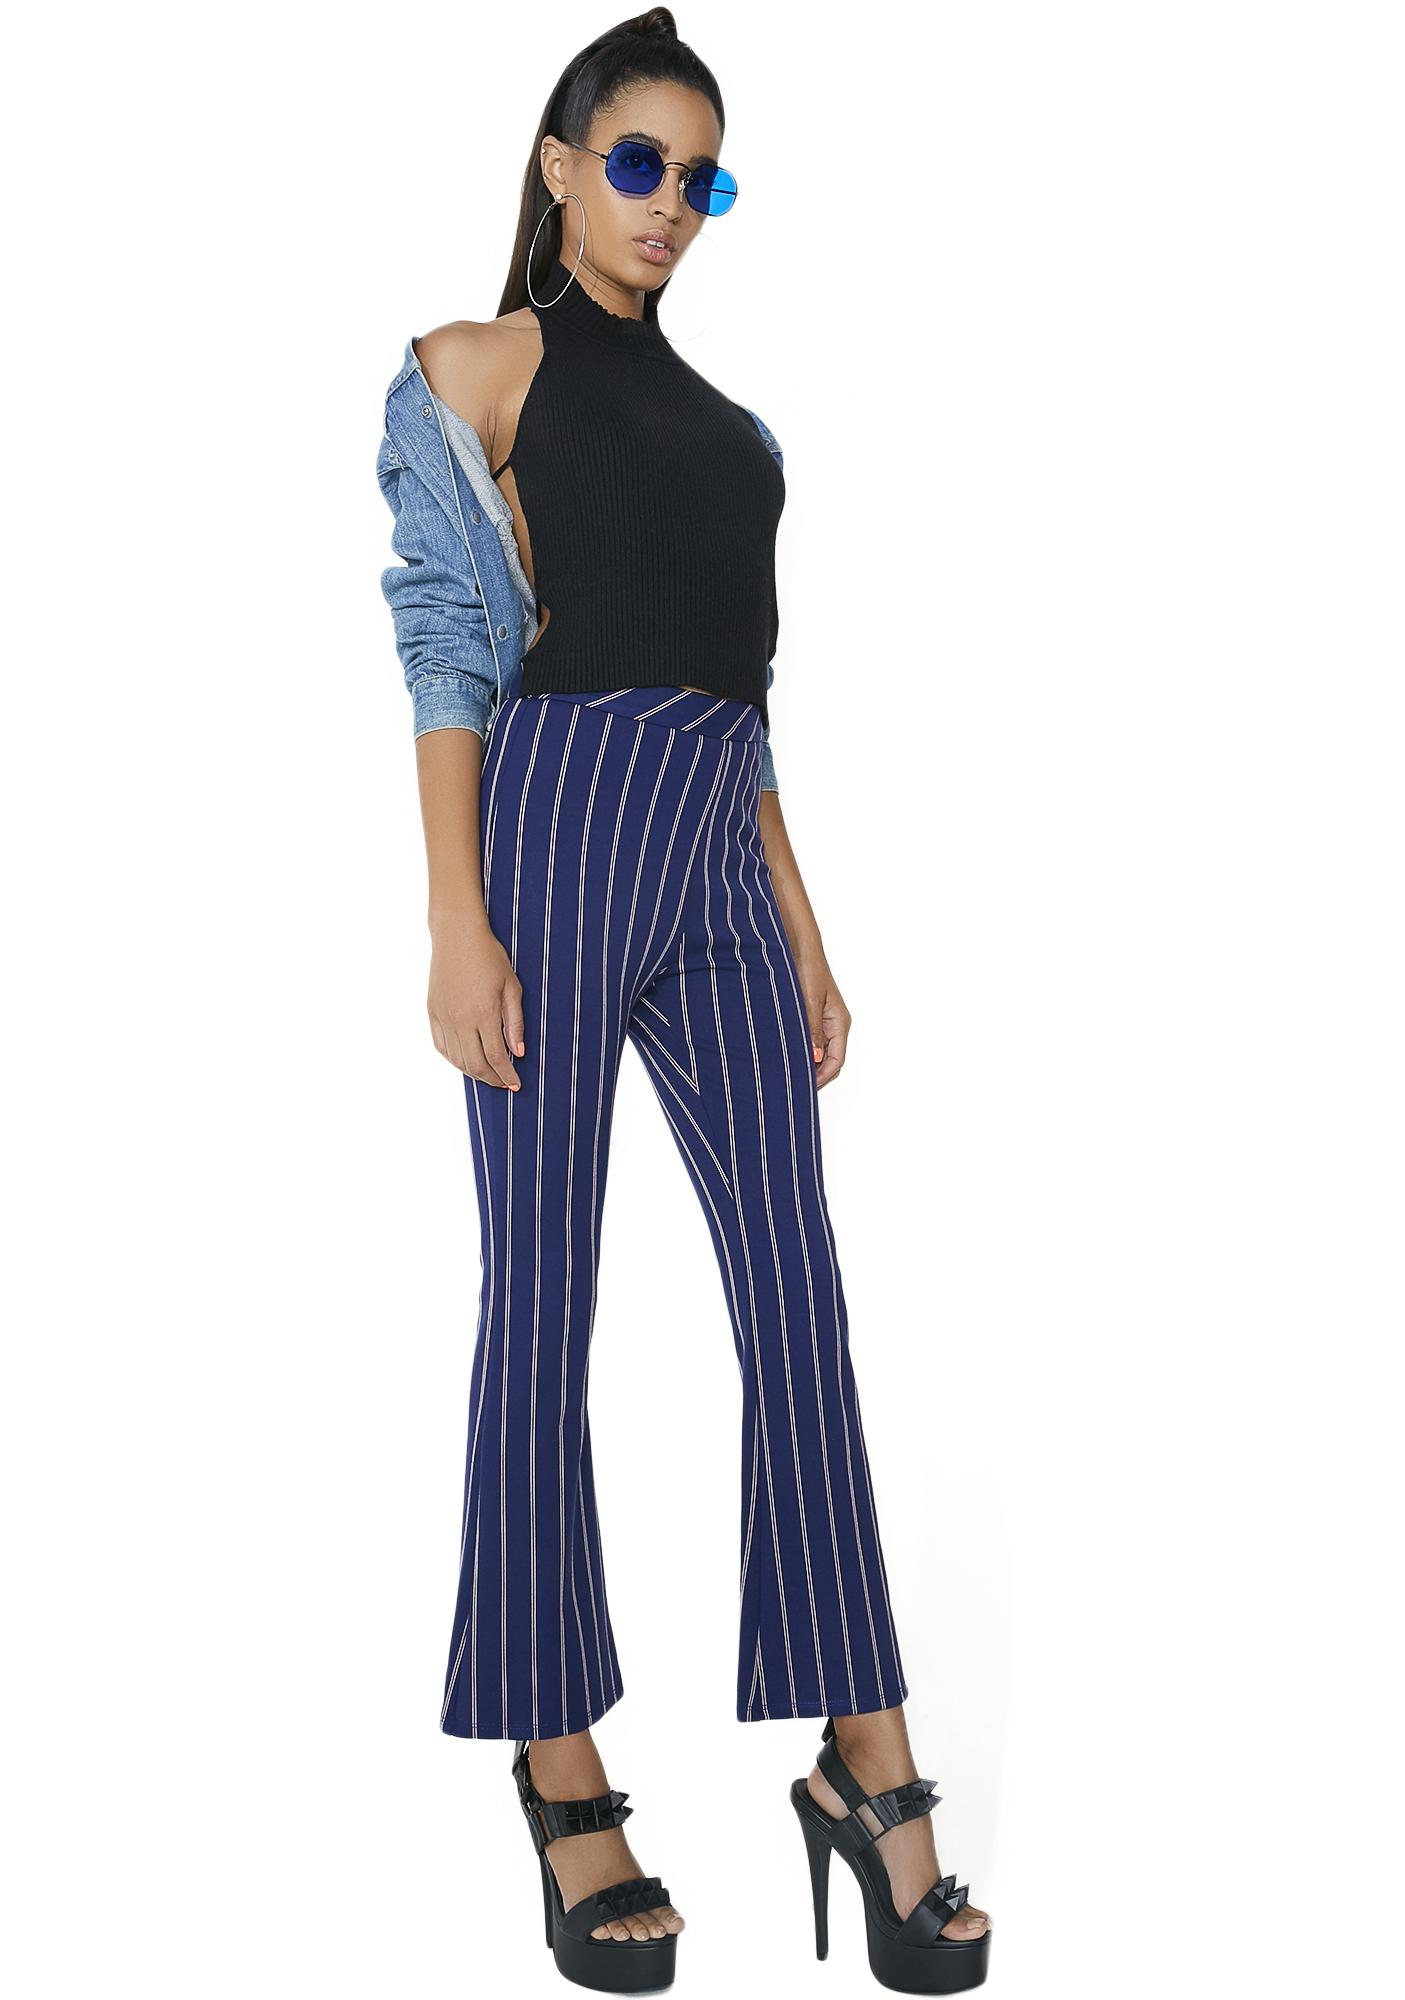 First Day Pinstripe Pants